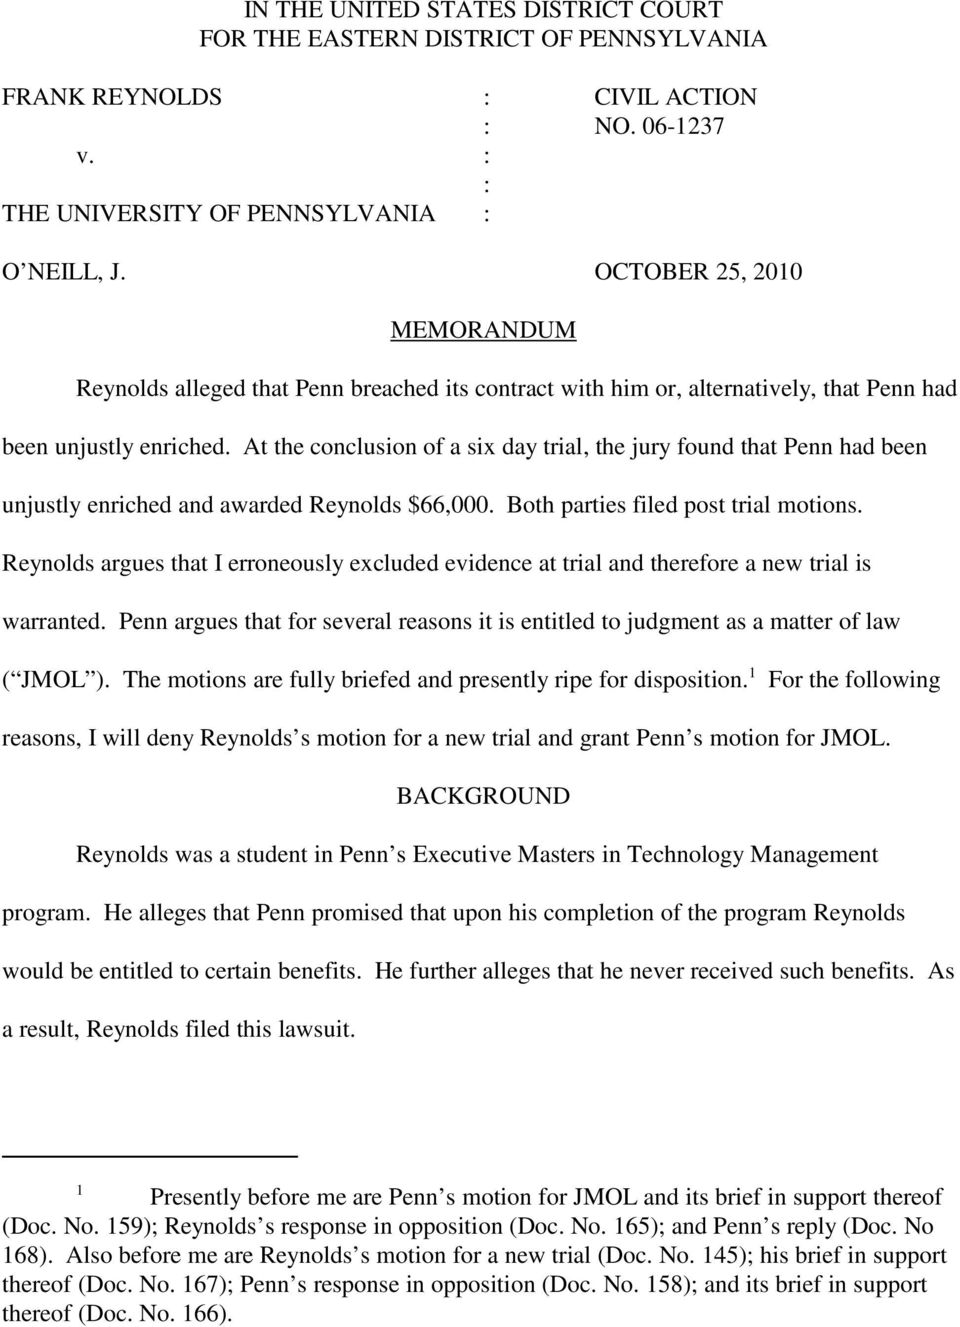 At the conclusion of a six day trial, the jury found that Penn had been unjustly enriched and awarded Reynolds $66,000. Both parties filed post trial motions.